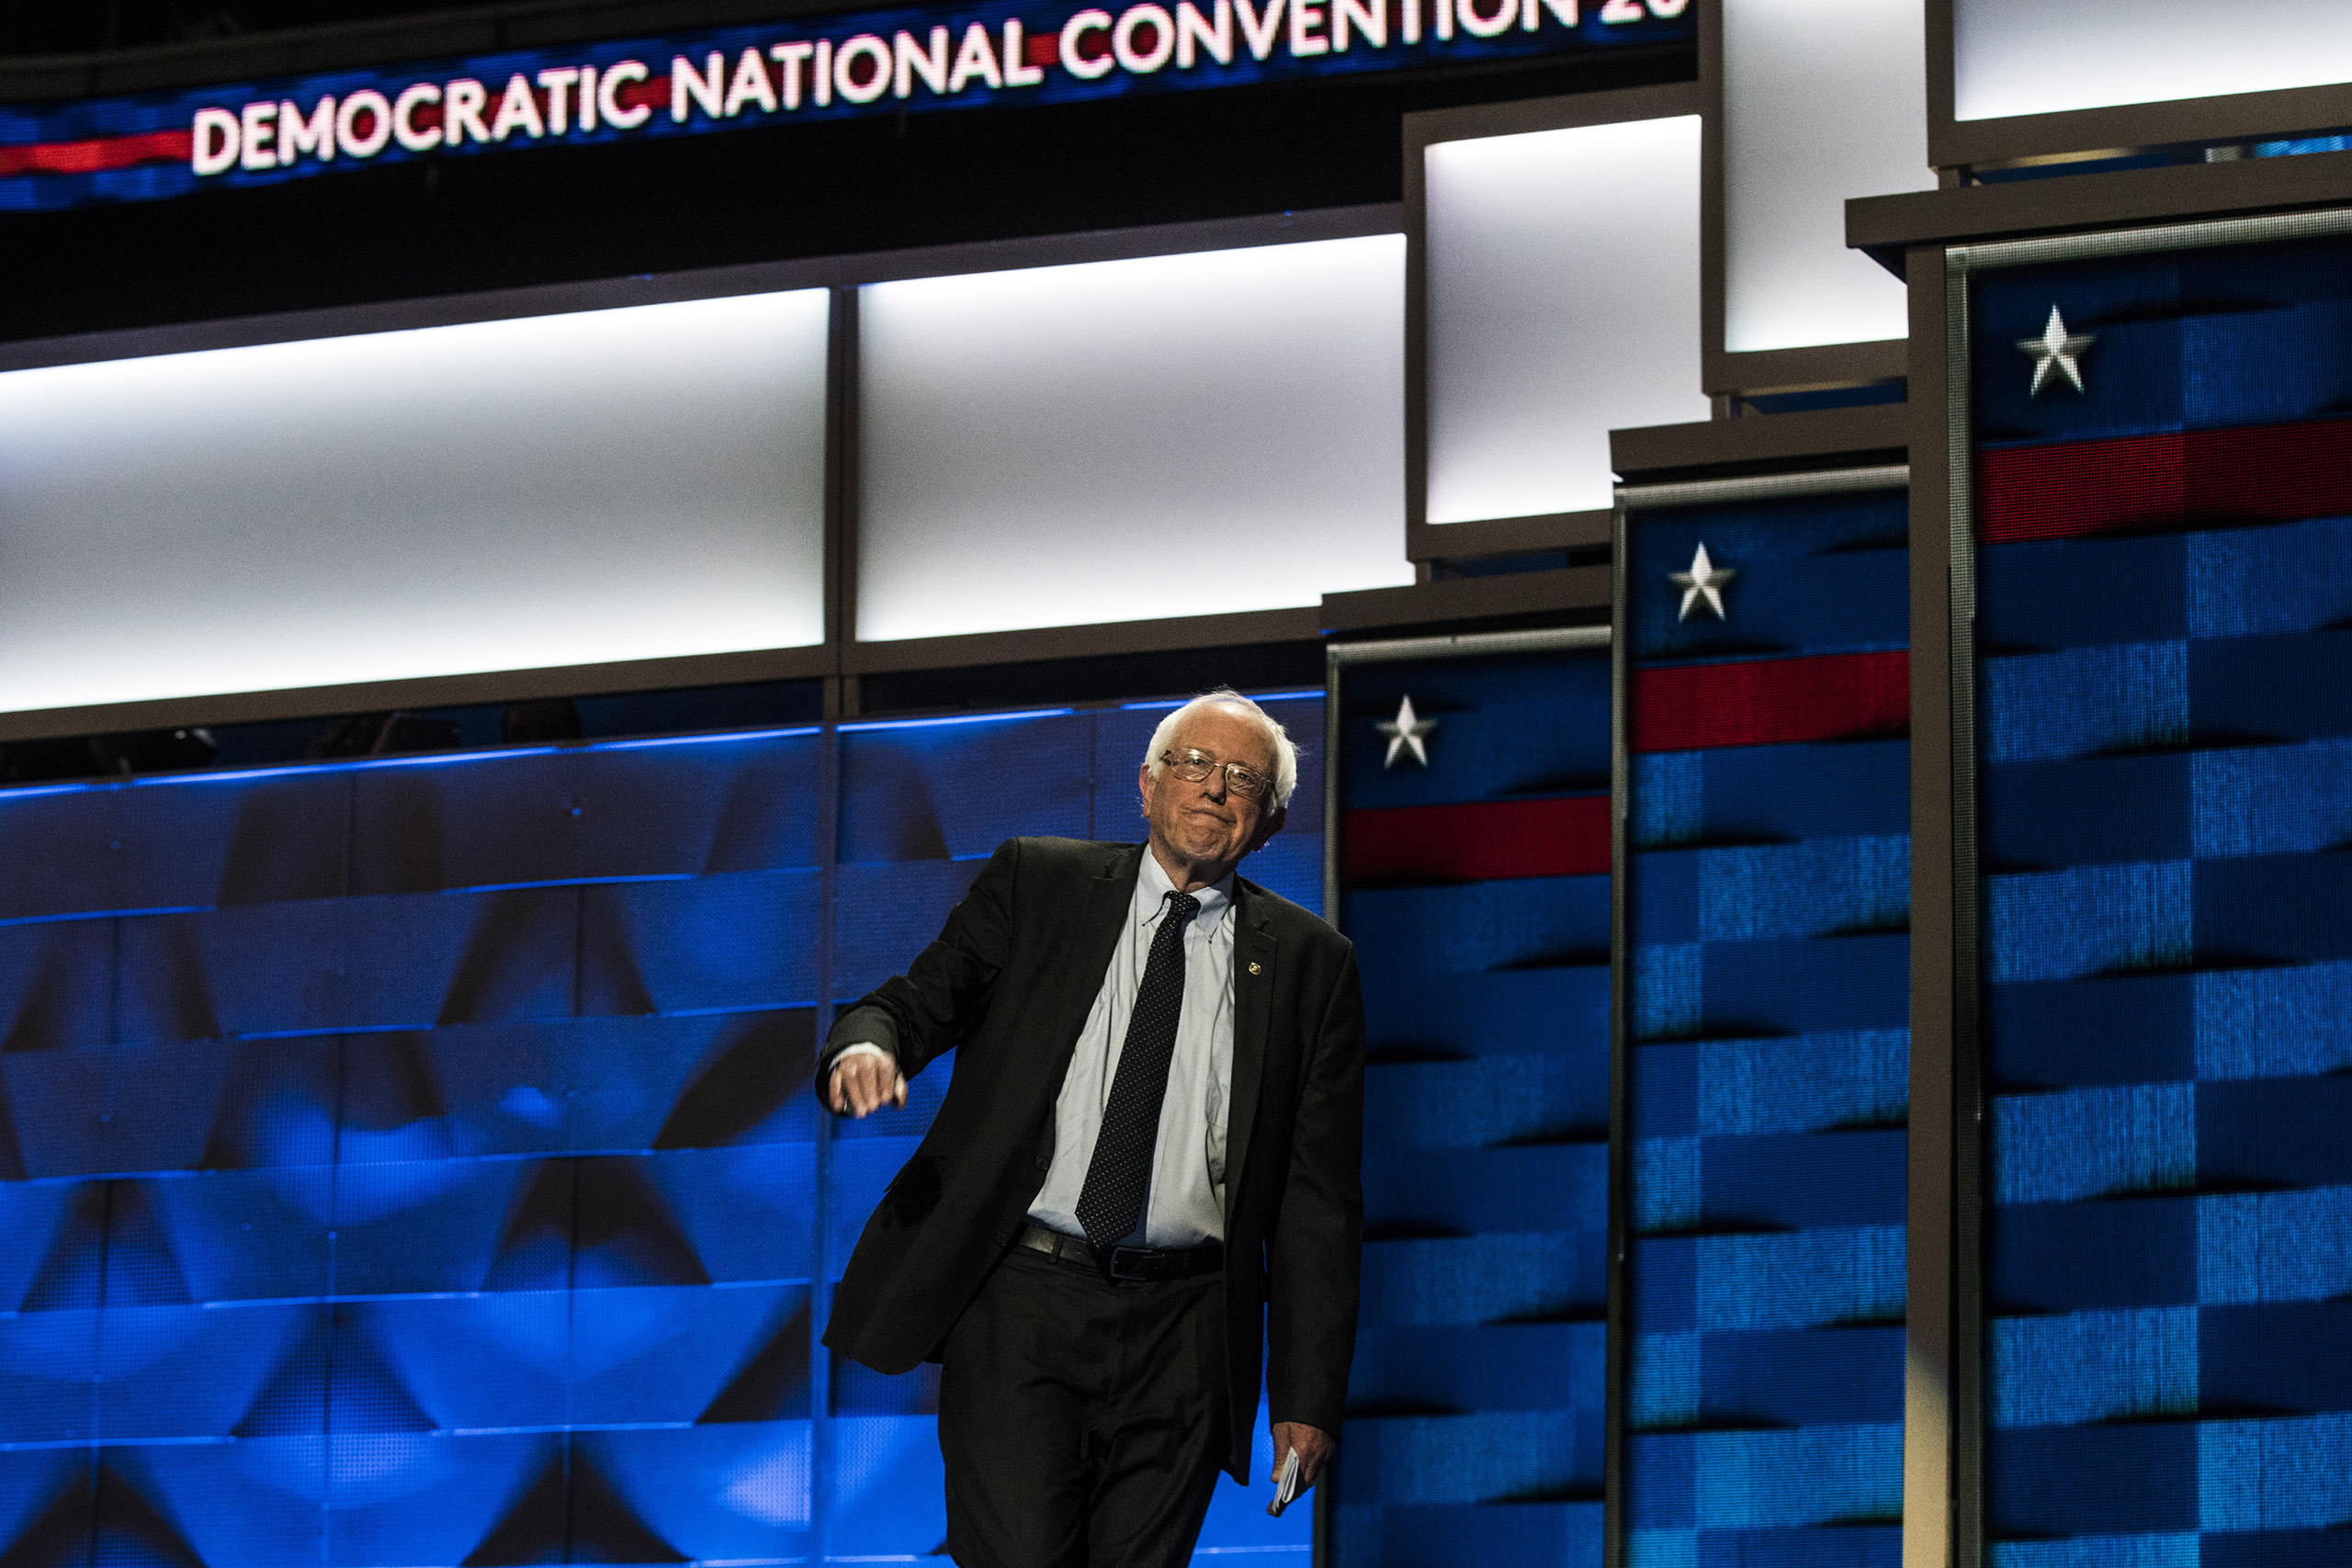 Sen. Bernie Sanders walks onto the stage before delivering remarks on the first day of the Democratic National Convention at the Wells Fargo Center, July 25, 2016 in Philadelphia, Pennsylvania.